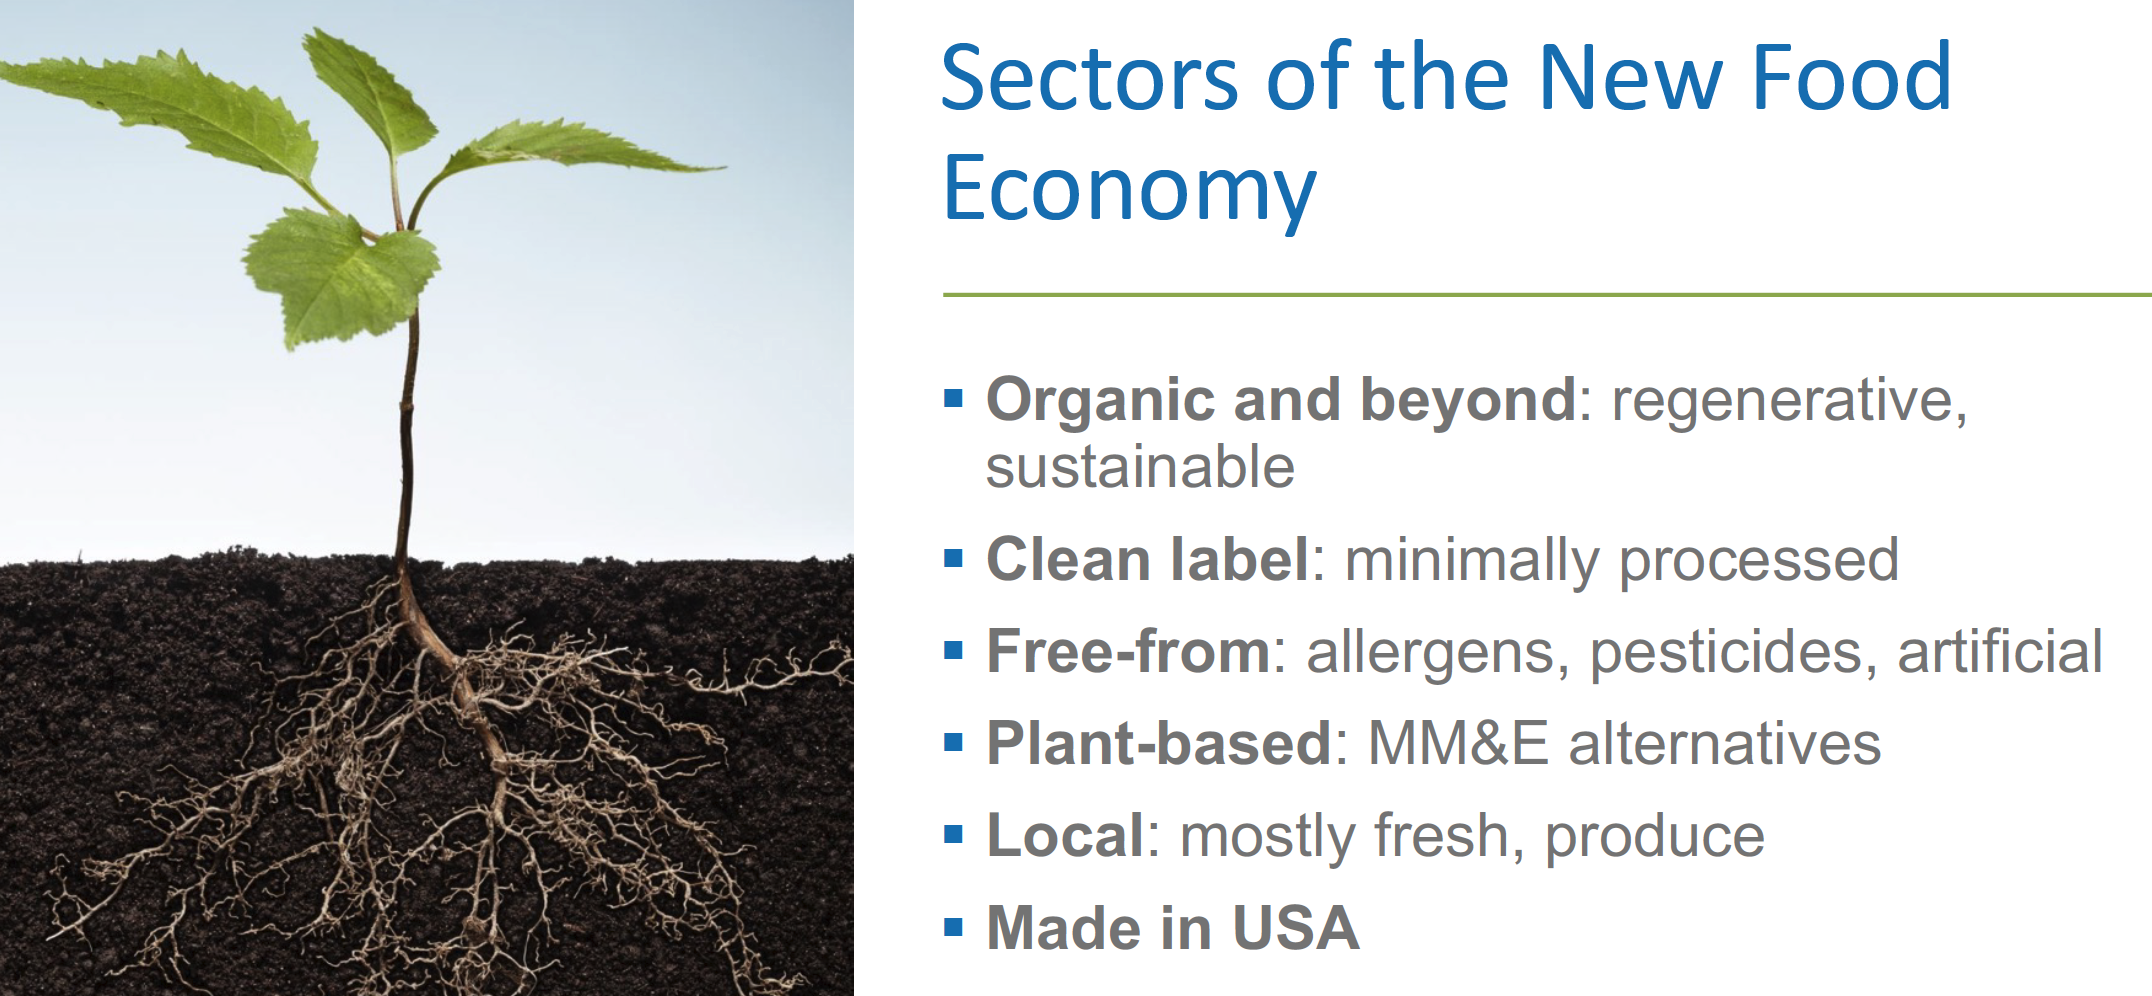 Sectors of the new food economy